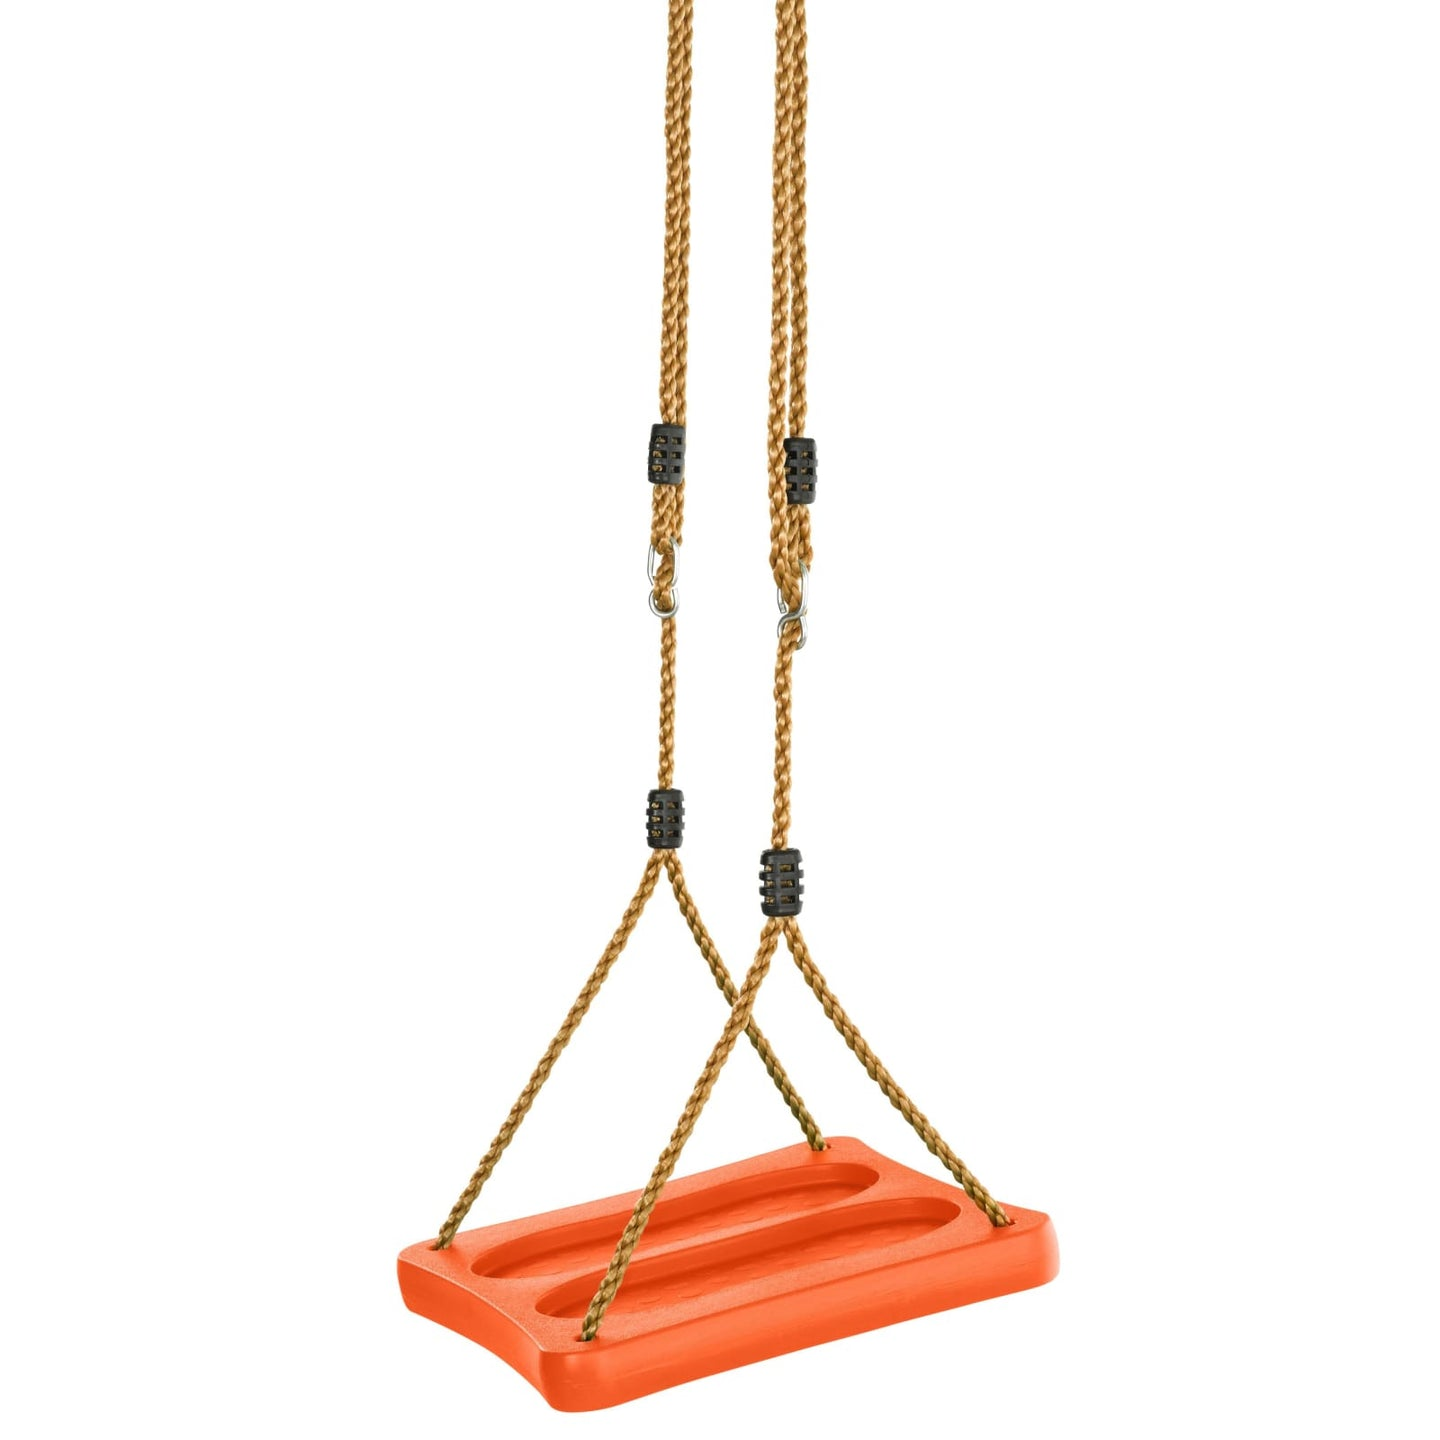 Swingan - One Of A Kind Standing Swing With Adjustable Ropes - Orange - Swssr-Or - Swings & Accessories